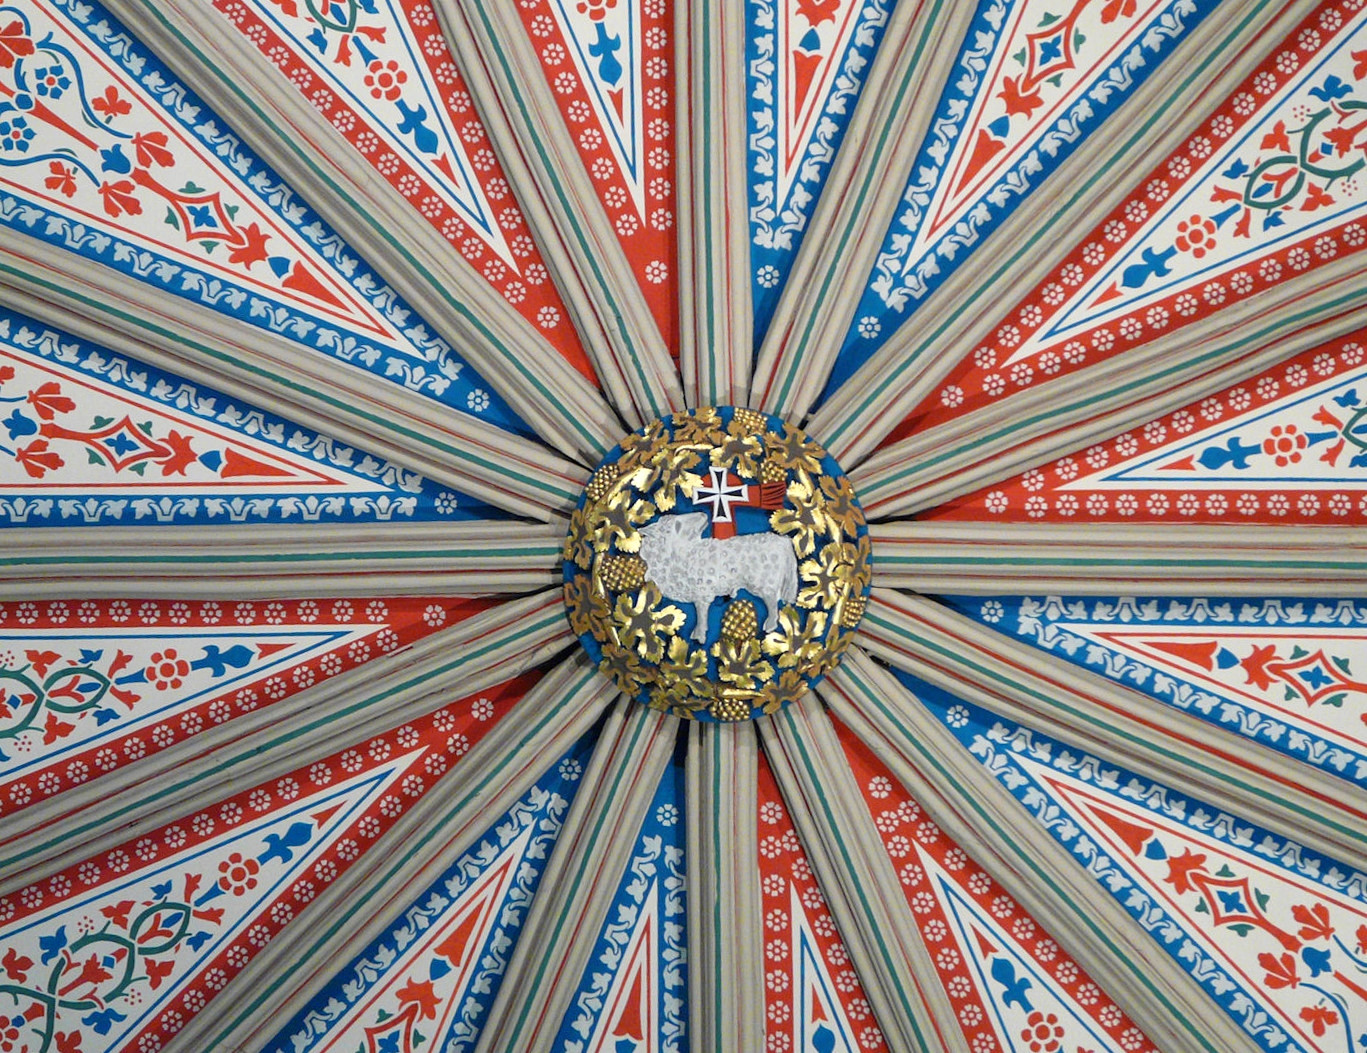 The central boss on the Gothic vault above the Chapter House